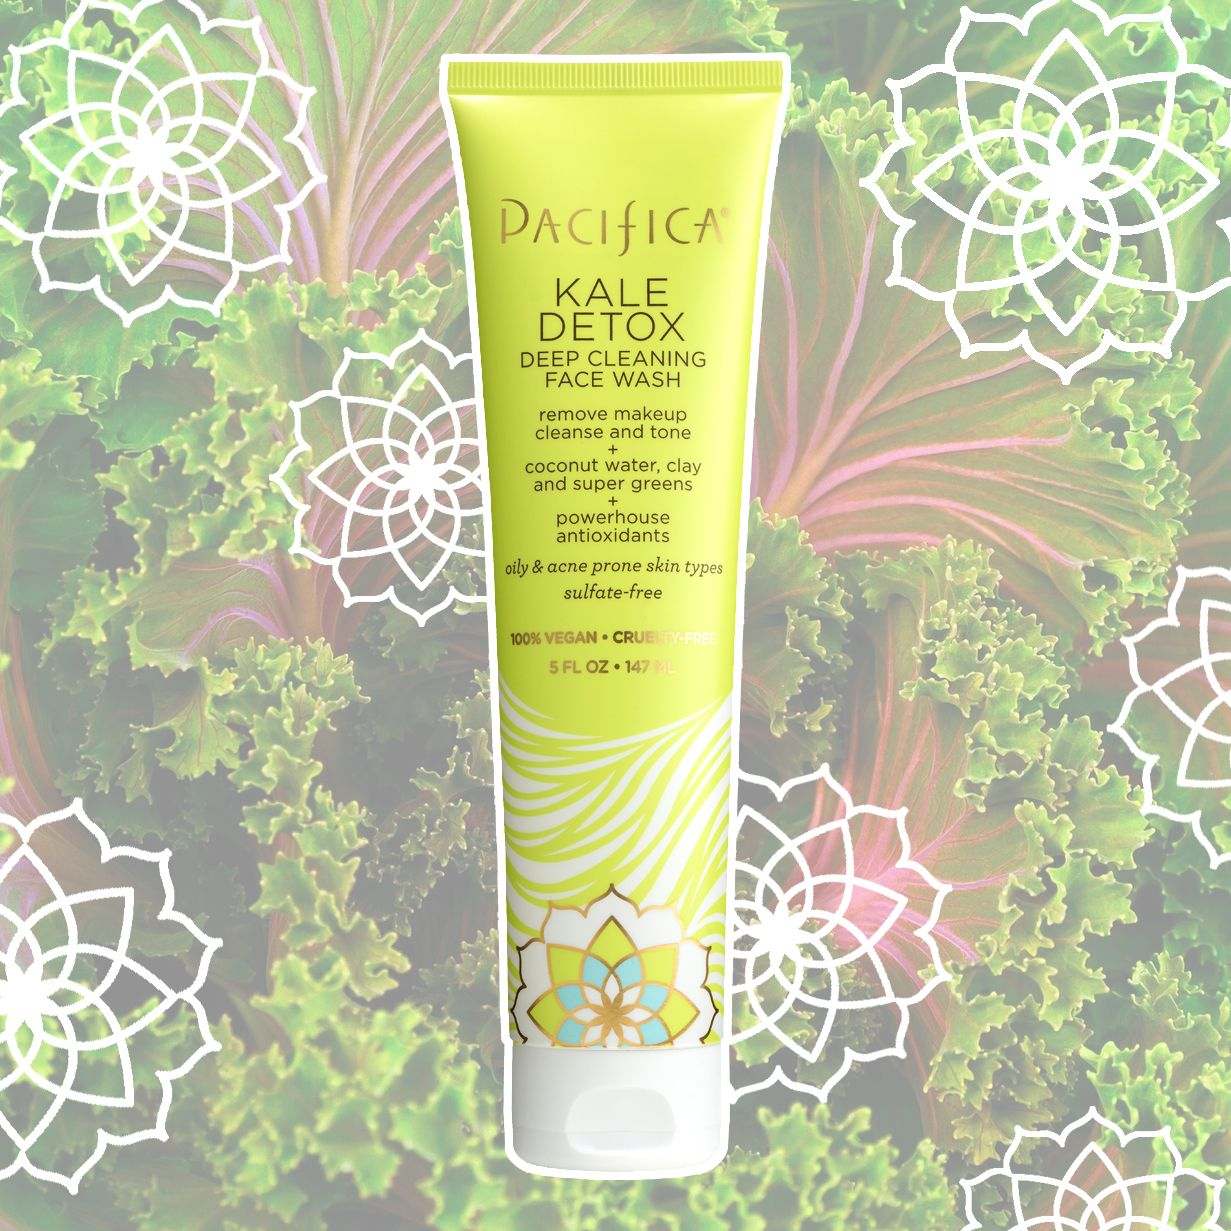 Pacifica Kale Detox Deep Cleansing Face Wash 5 fl oz in